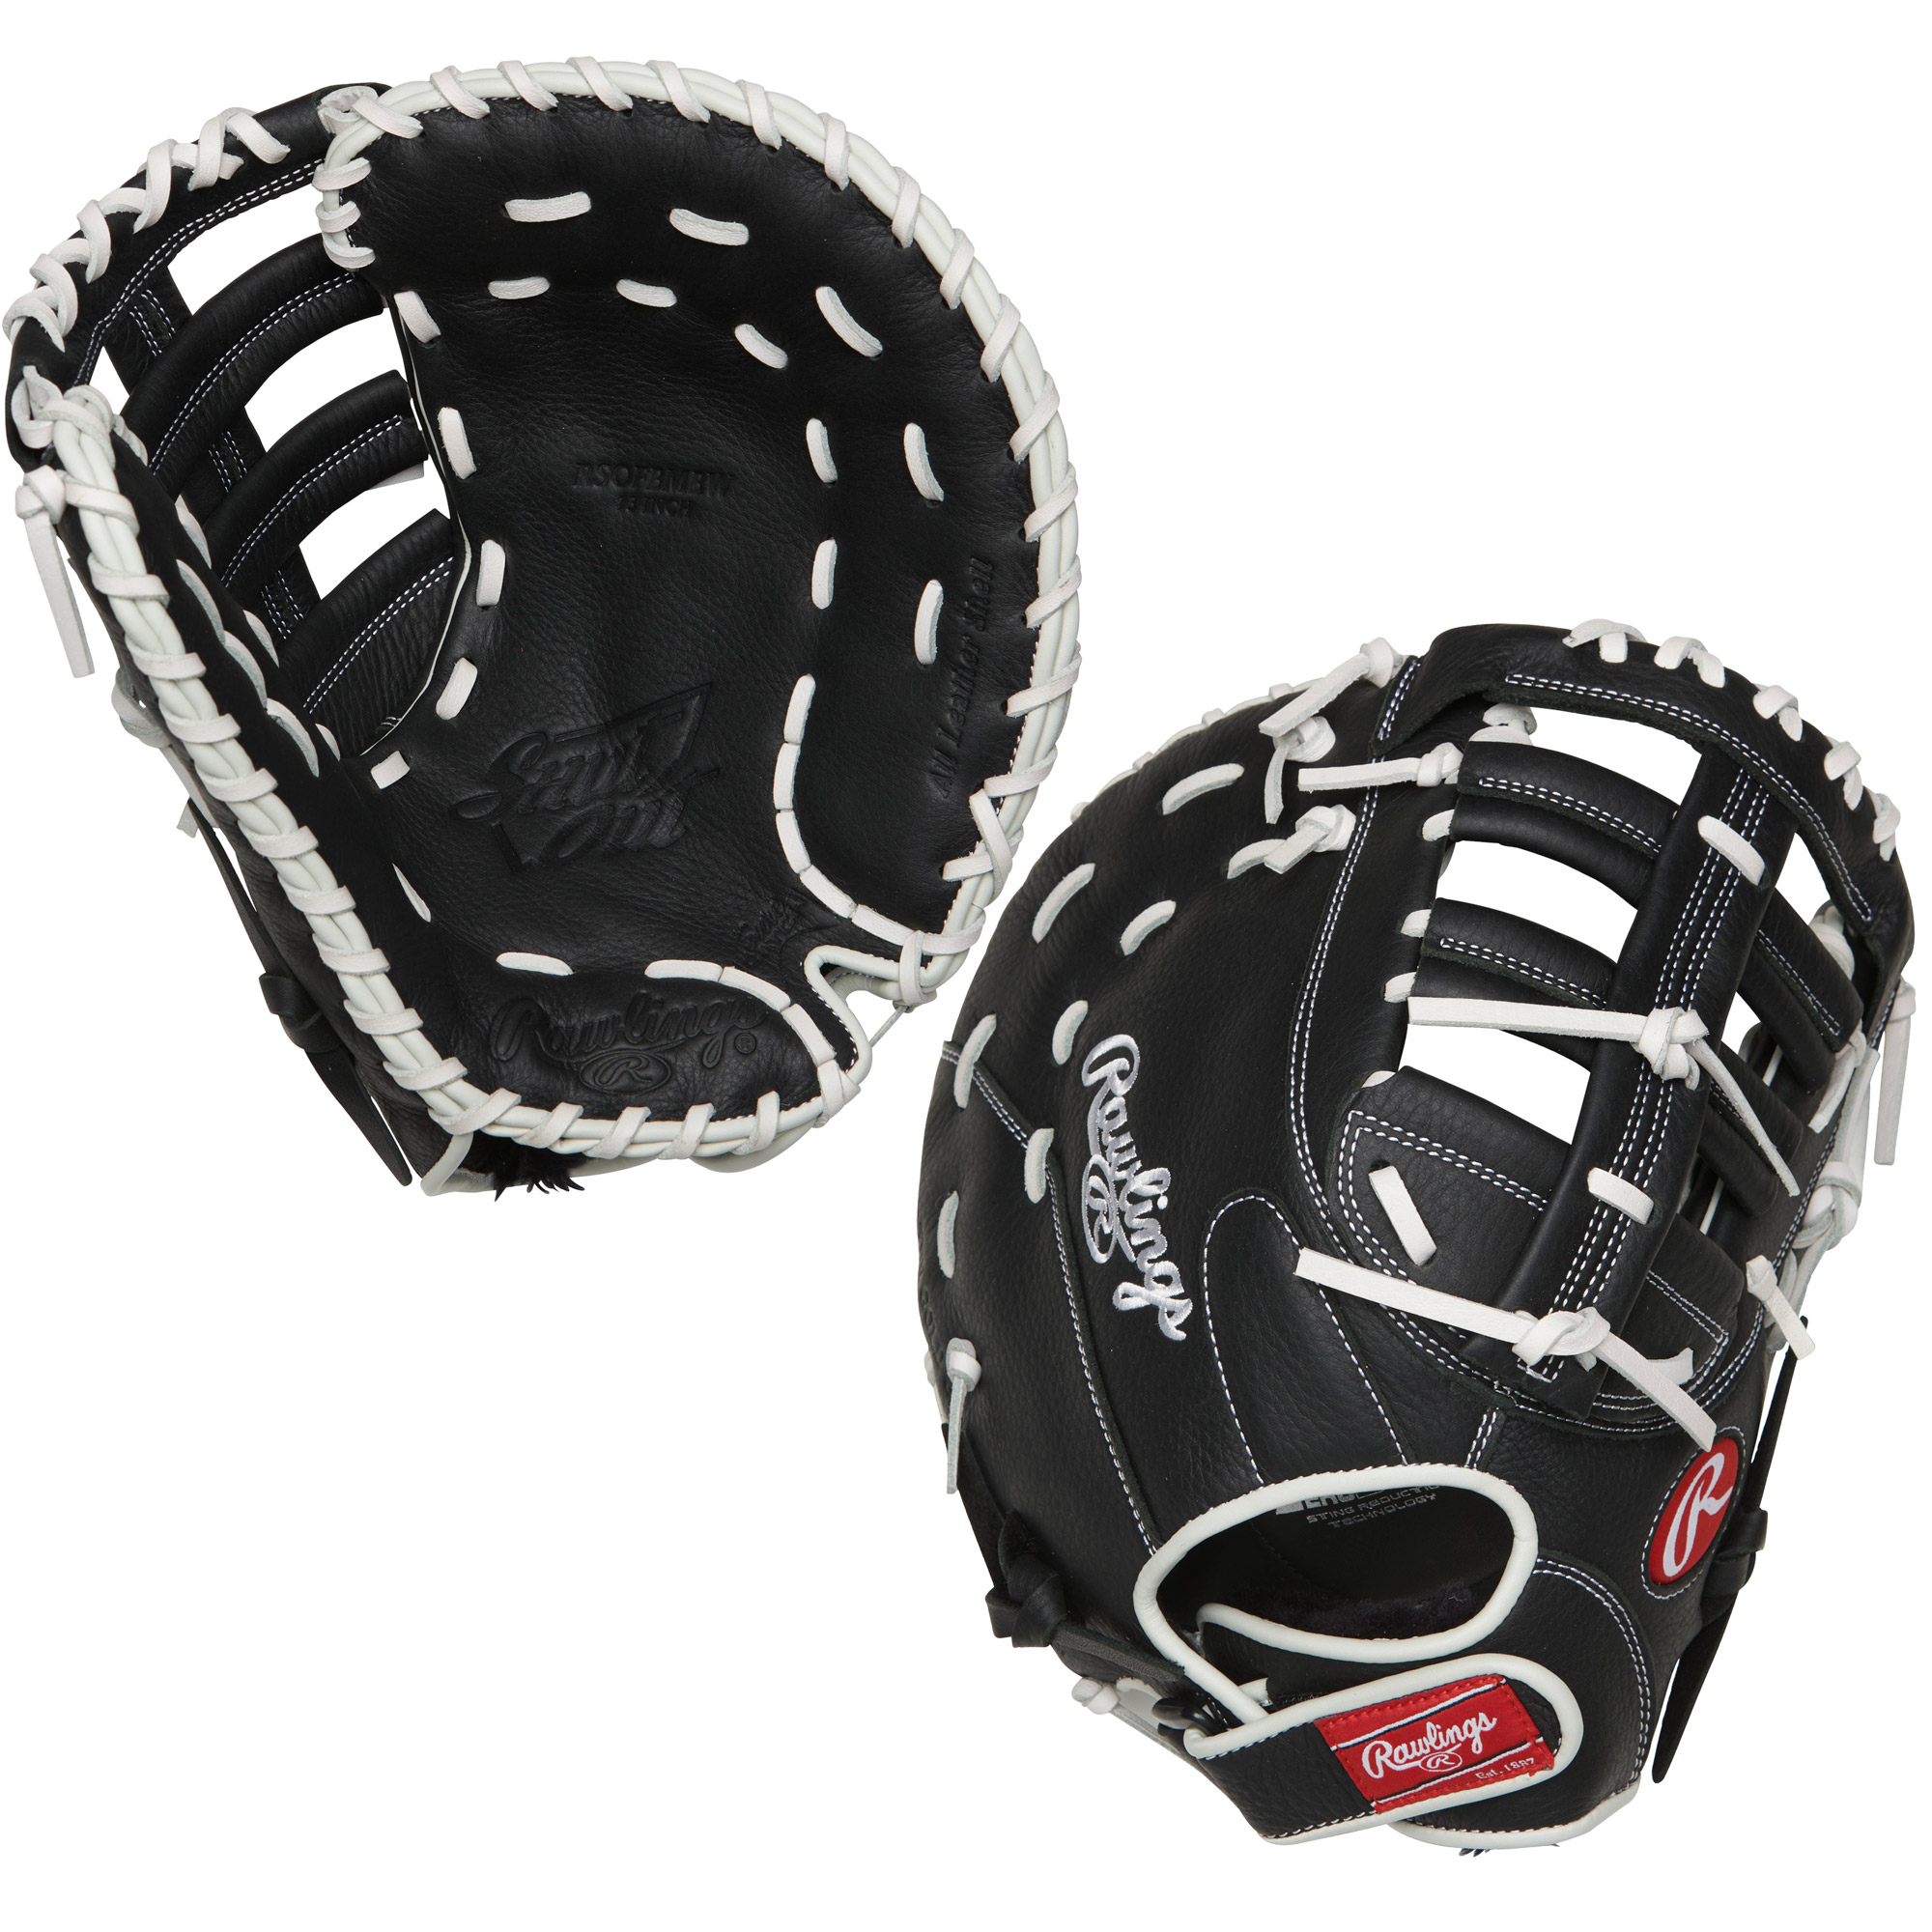 "RSOFBMBW Rawlings Shut Out Fastpitch First Base Mitt 13"" - Regular THUMBNAIL"